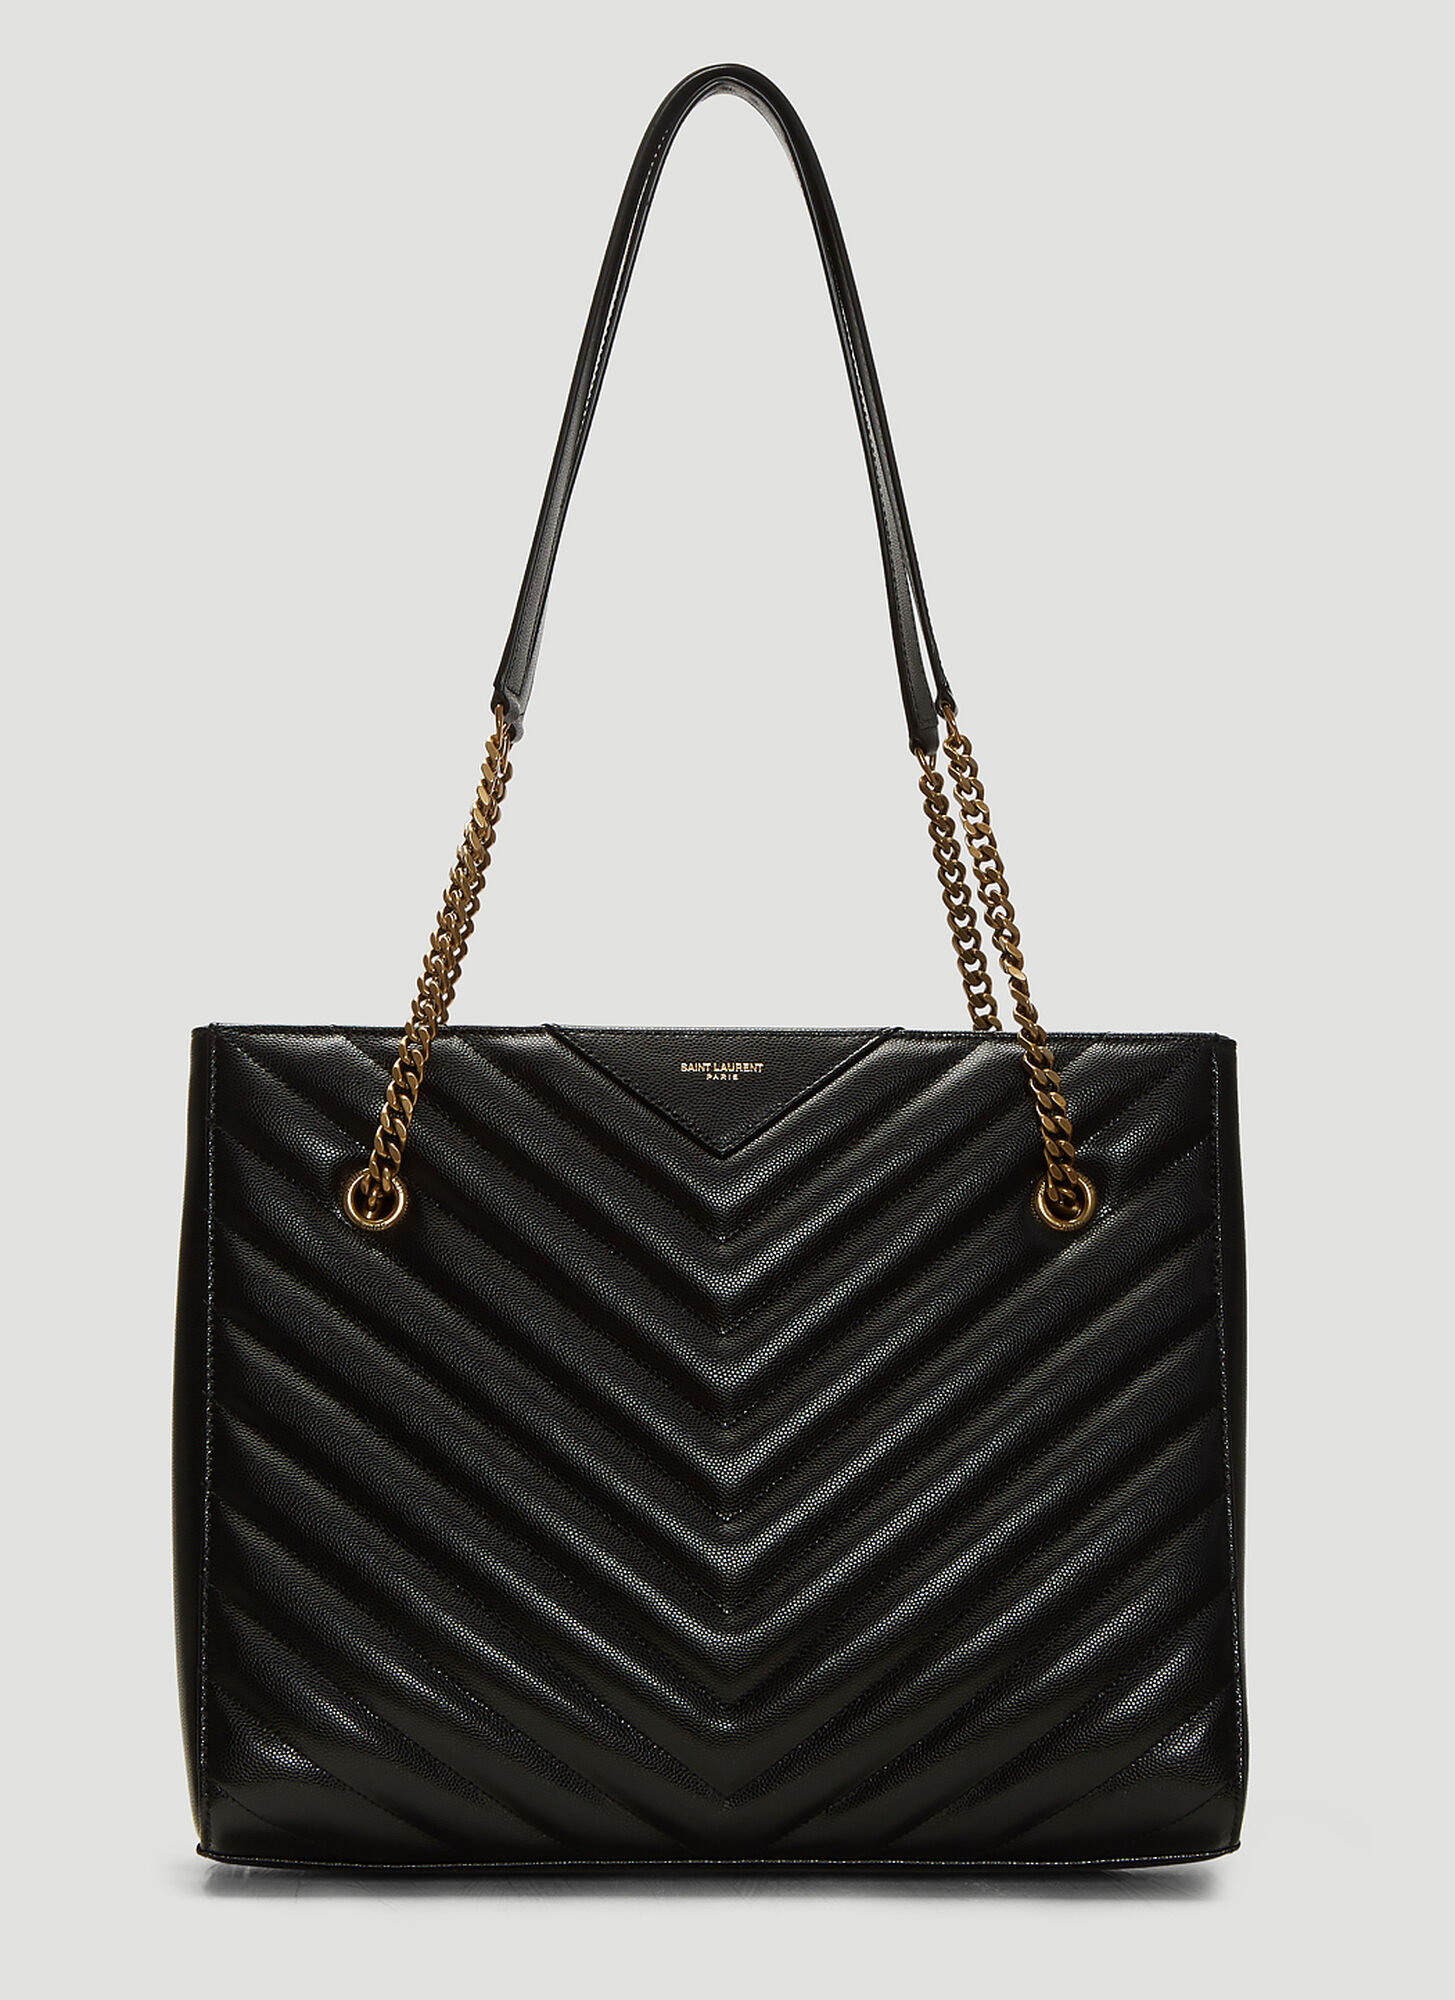 Saint Laurent Tribeca Bag in Black